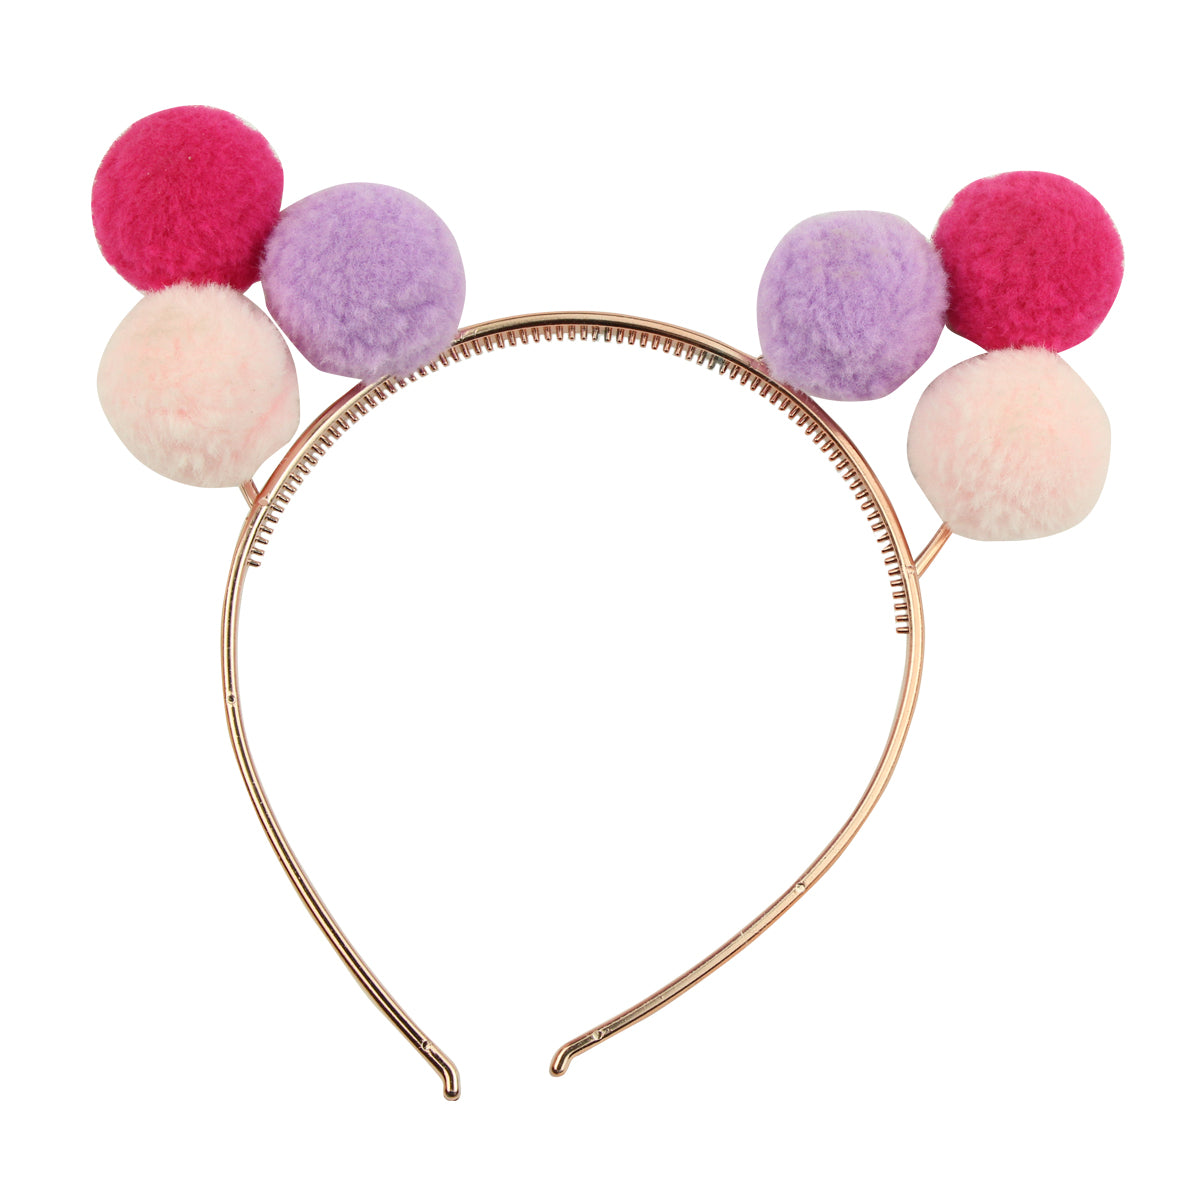 red purple peach plush pom pom jersey ball hairband plastic cat ears headband for teenage girls6056 - SOHOBUCKS CO.,LIMITED